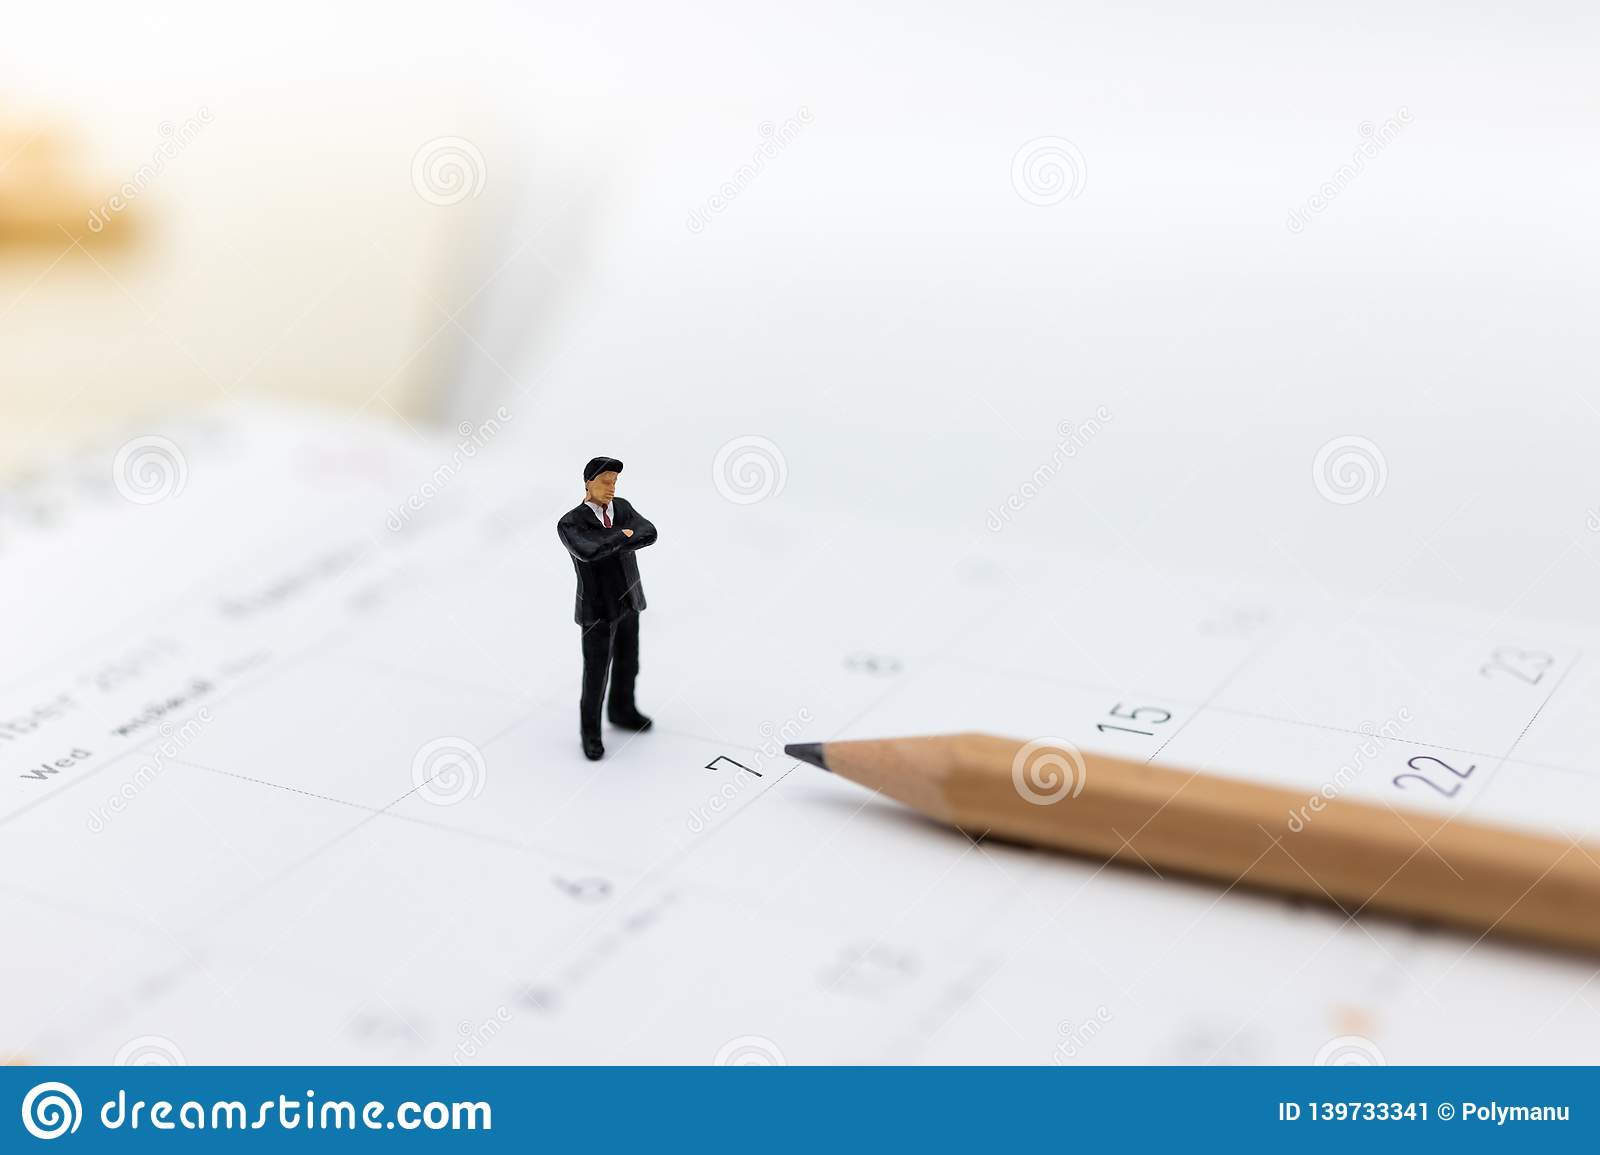 Miniature people : Businessman standing on the calendar to set the date for the meeting . Image use for business meetings concept